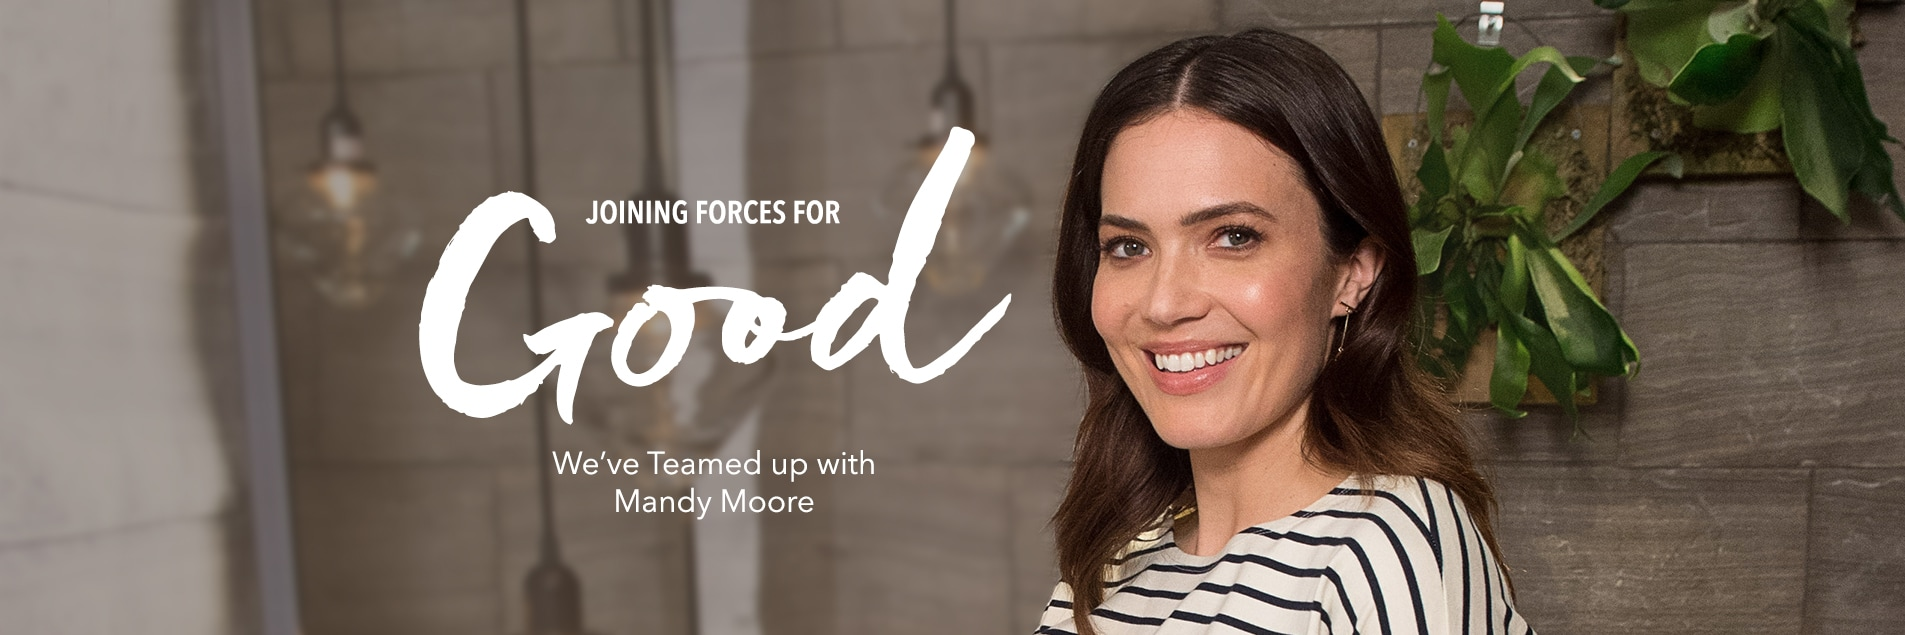 Joining forces for good, we've teamed up with Mandy Moore